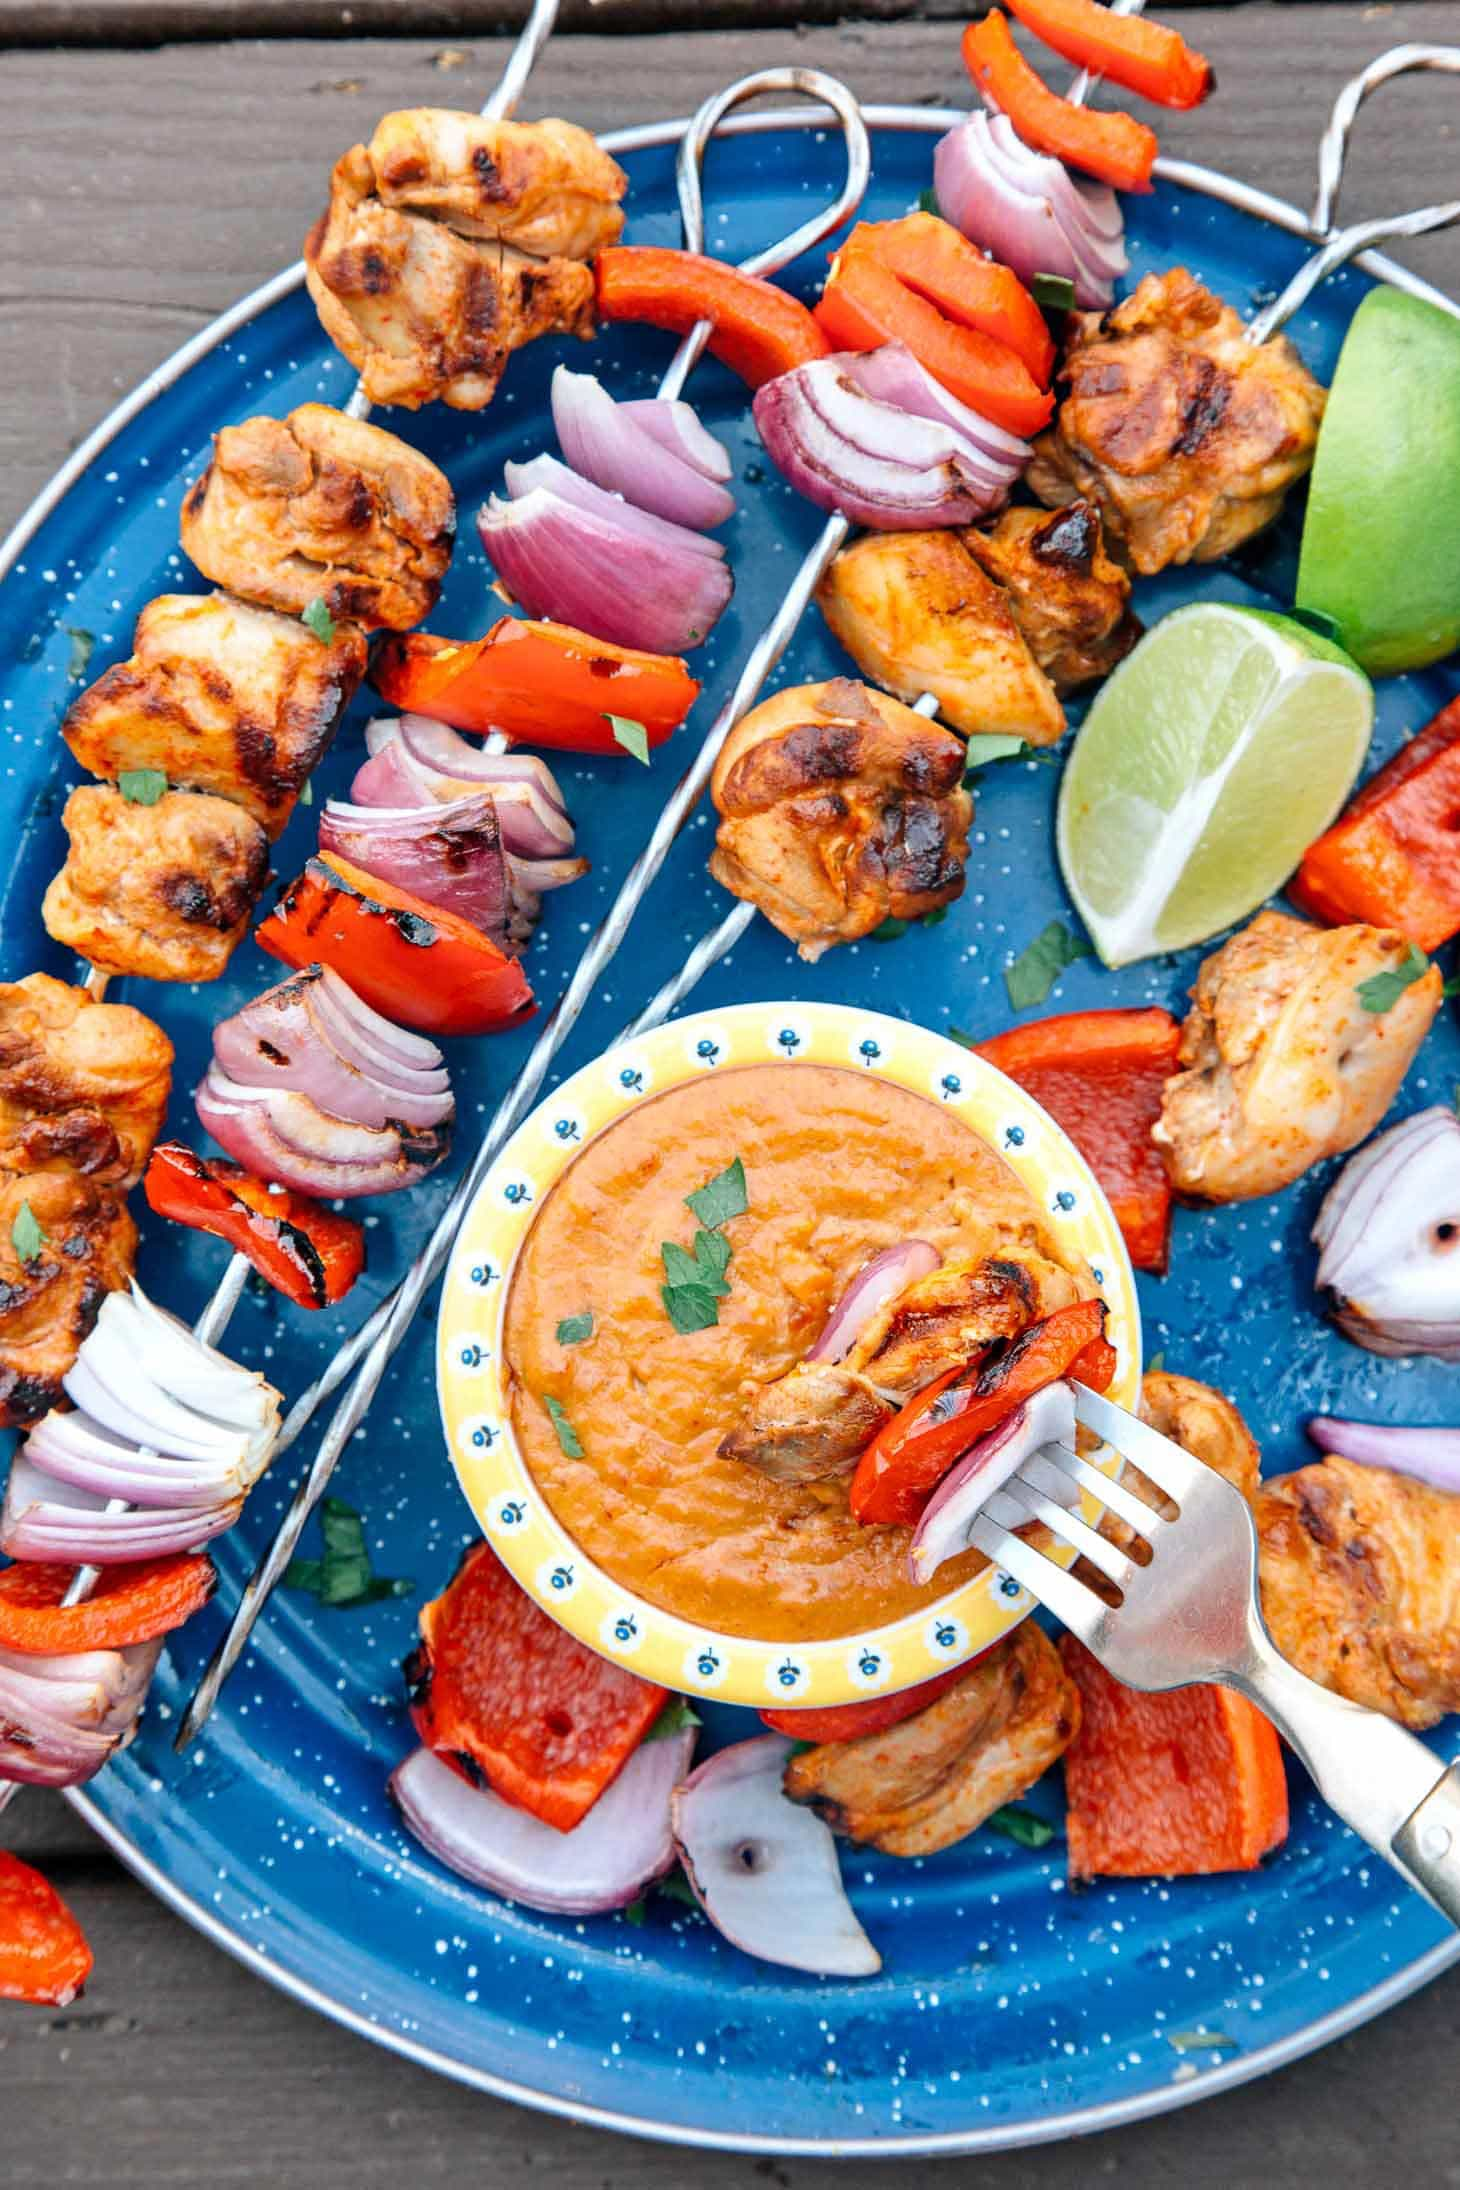 Thai grilled chicken skewers on a blue camping plate with a small bowl of peanut dipping sauce.